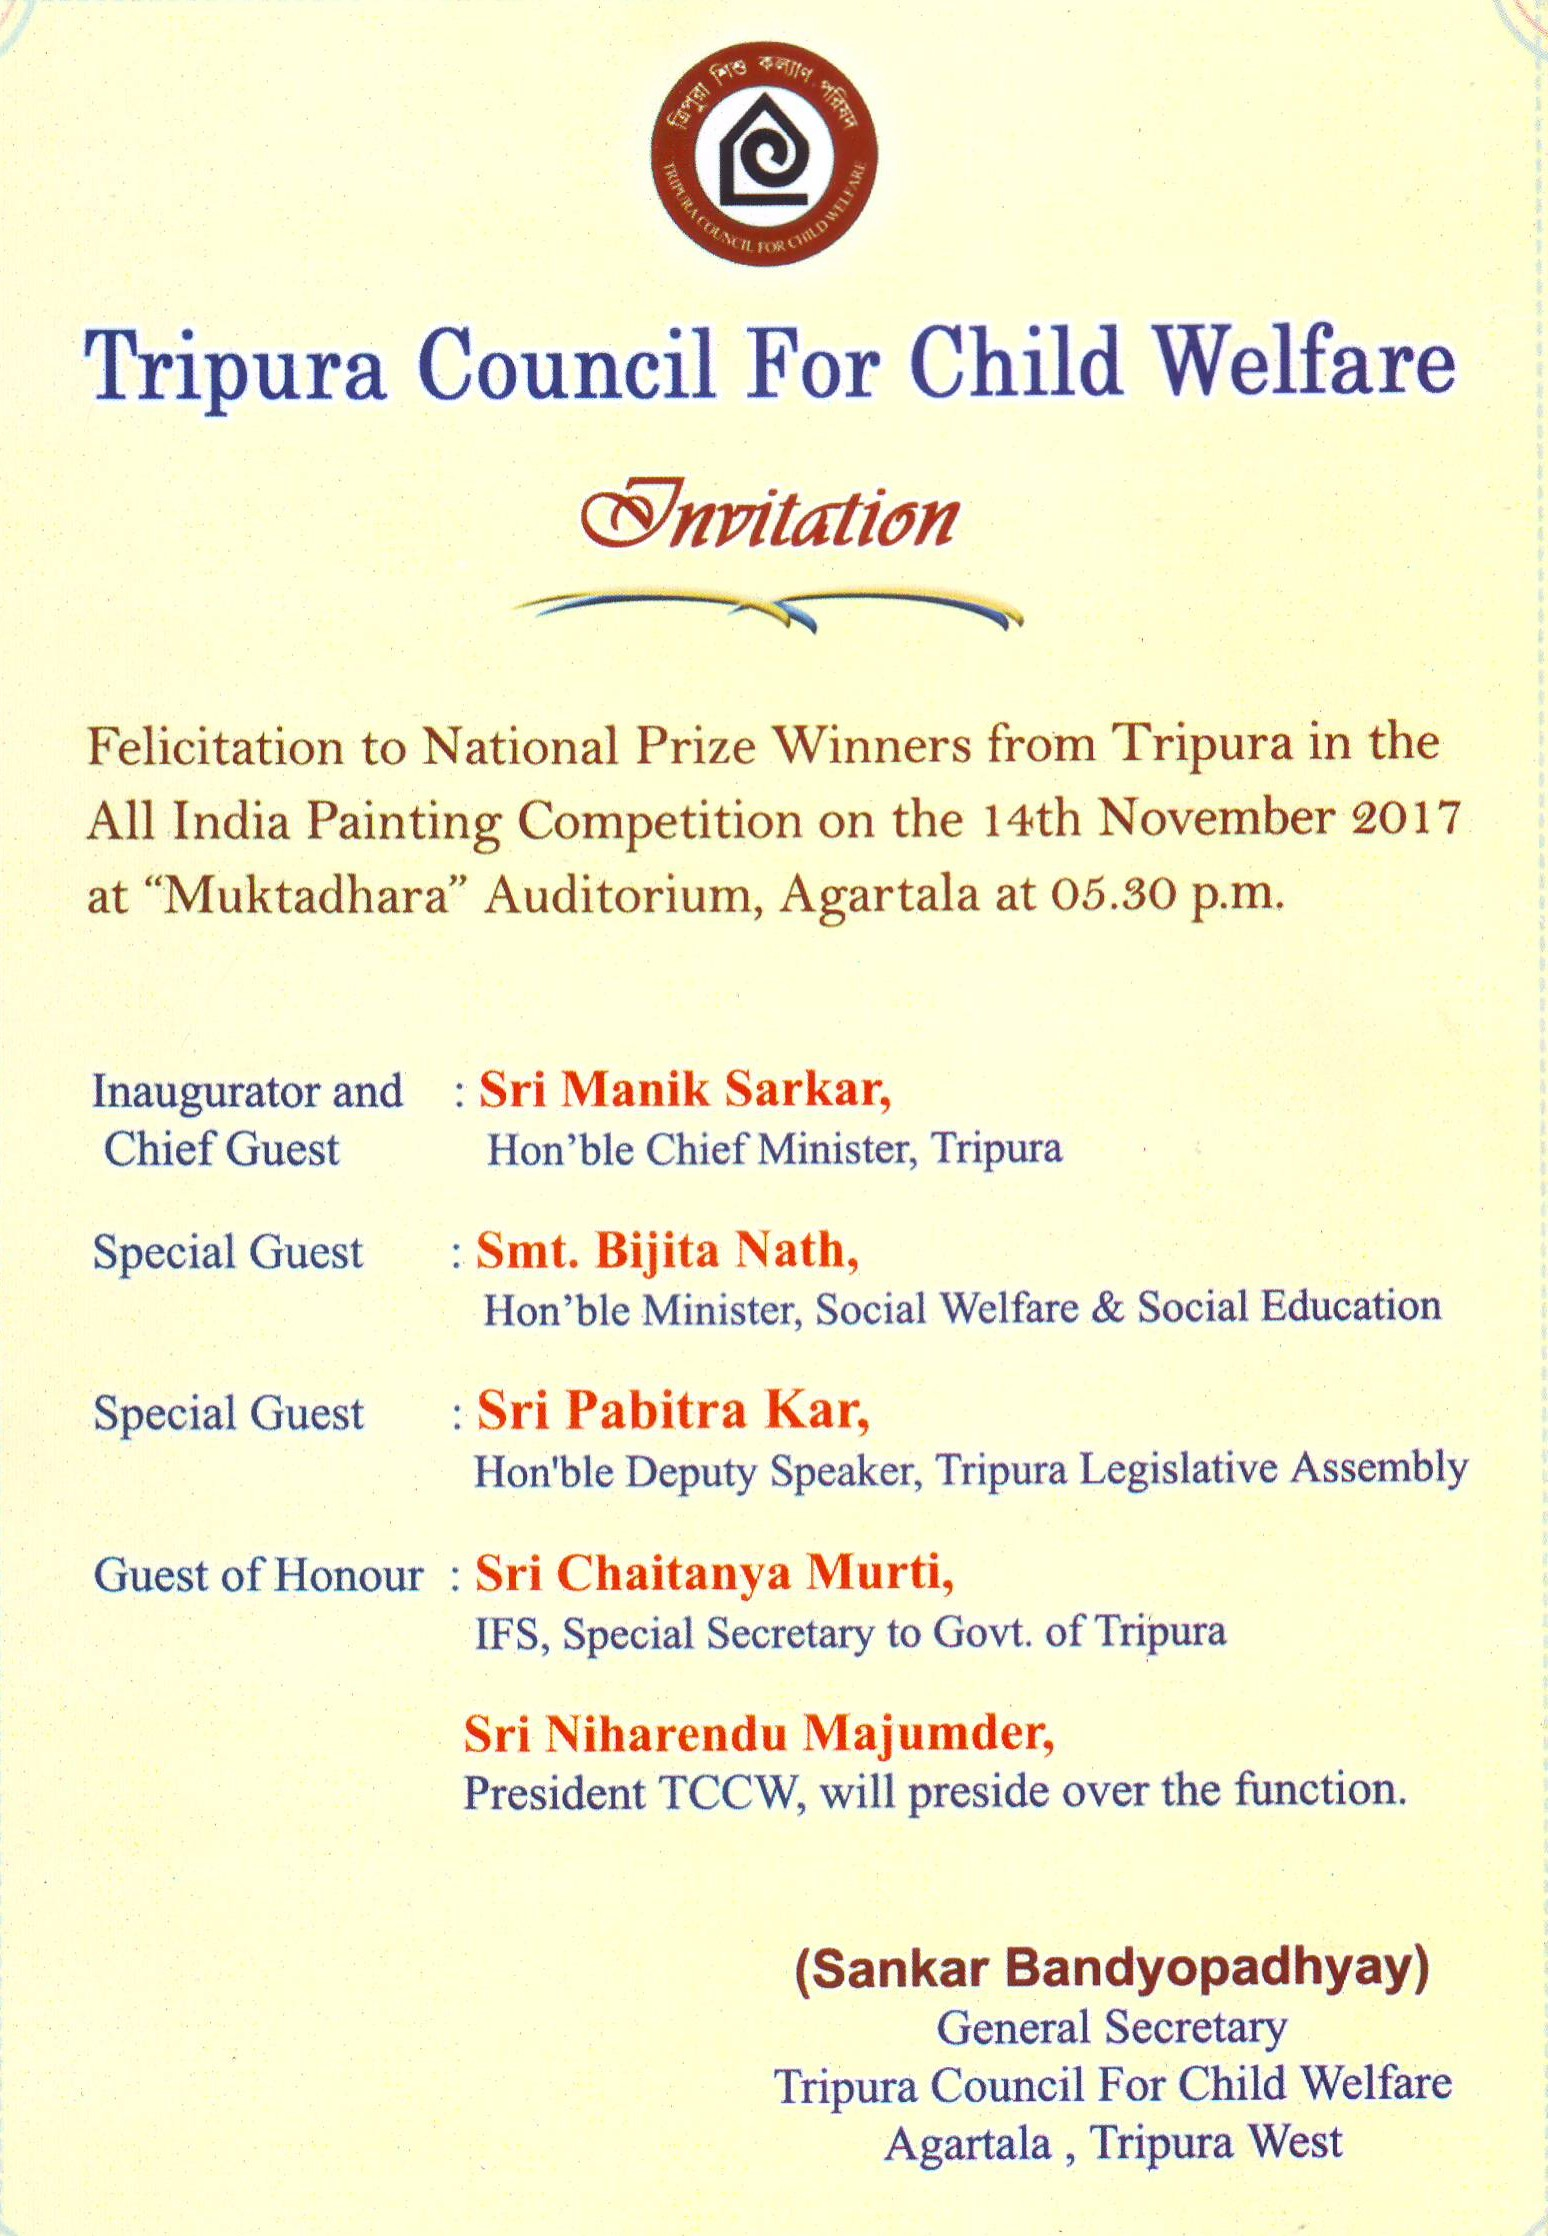 FELICITATION TO NATIONAL PAINTING COMPETITION WINNER TRIPURA